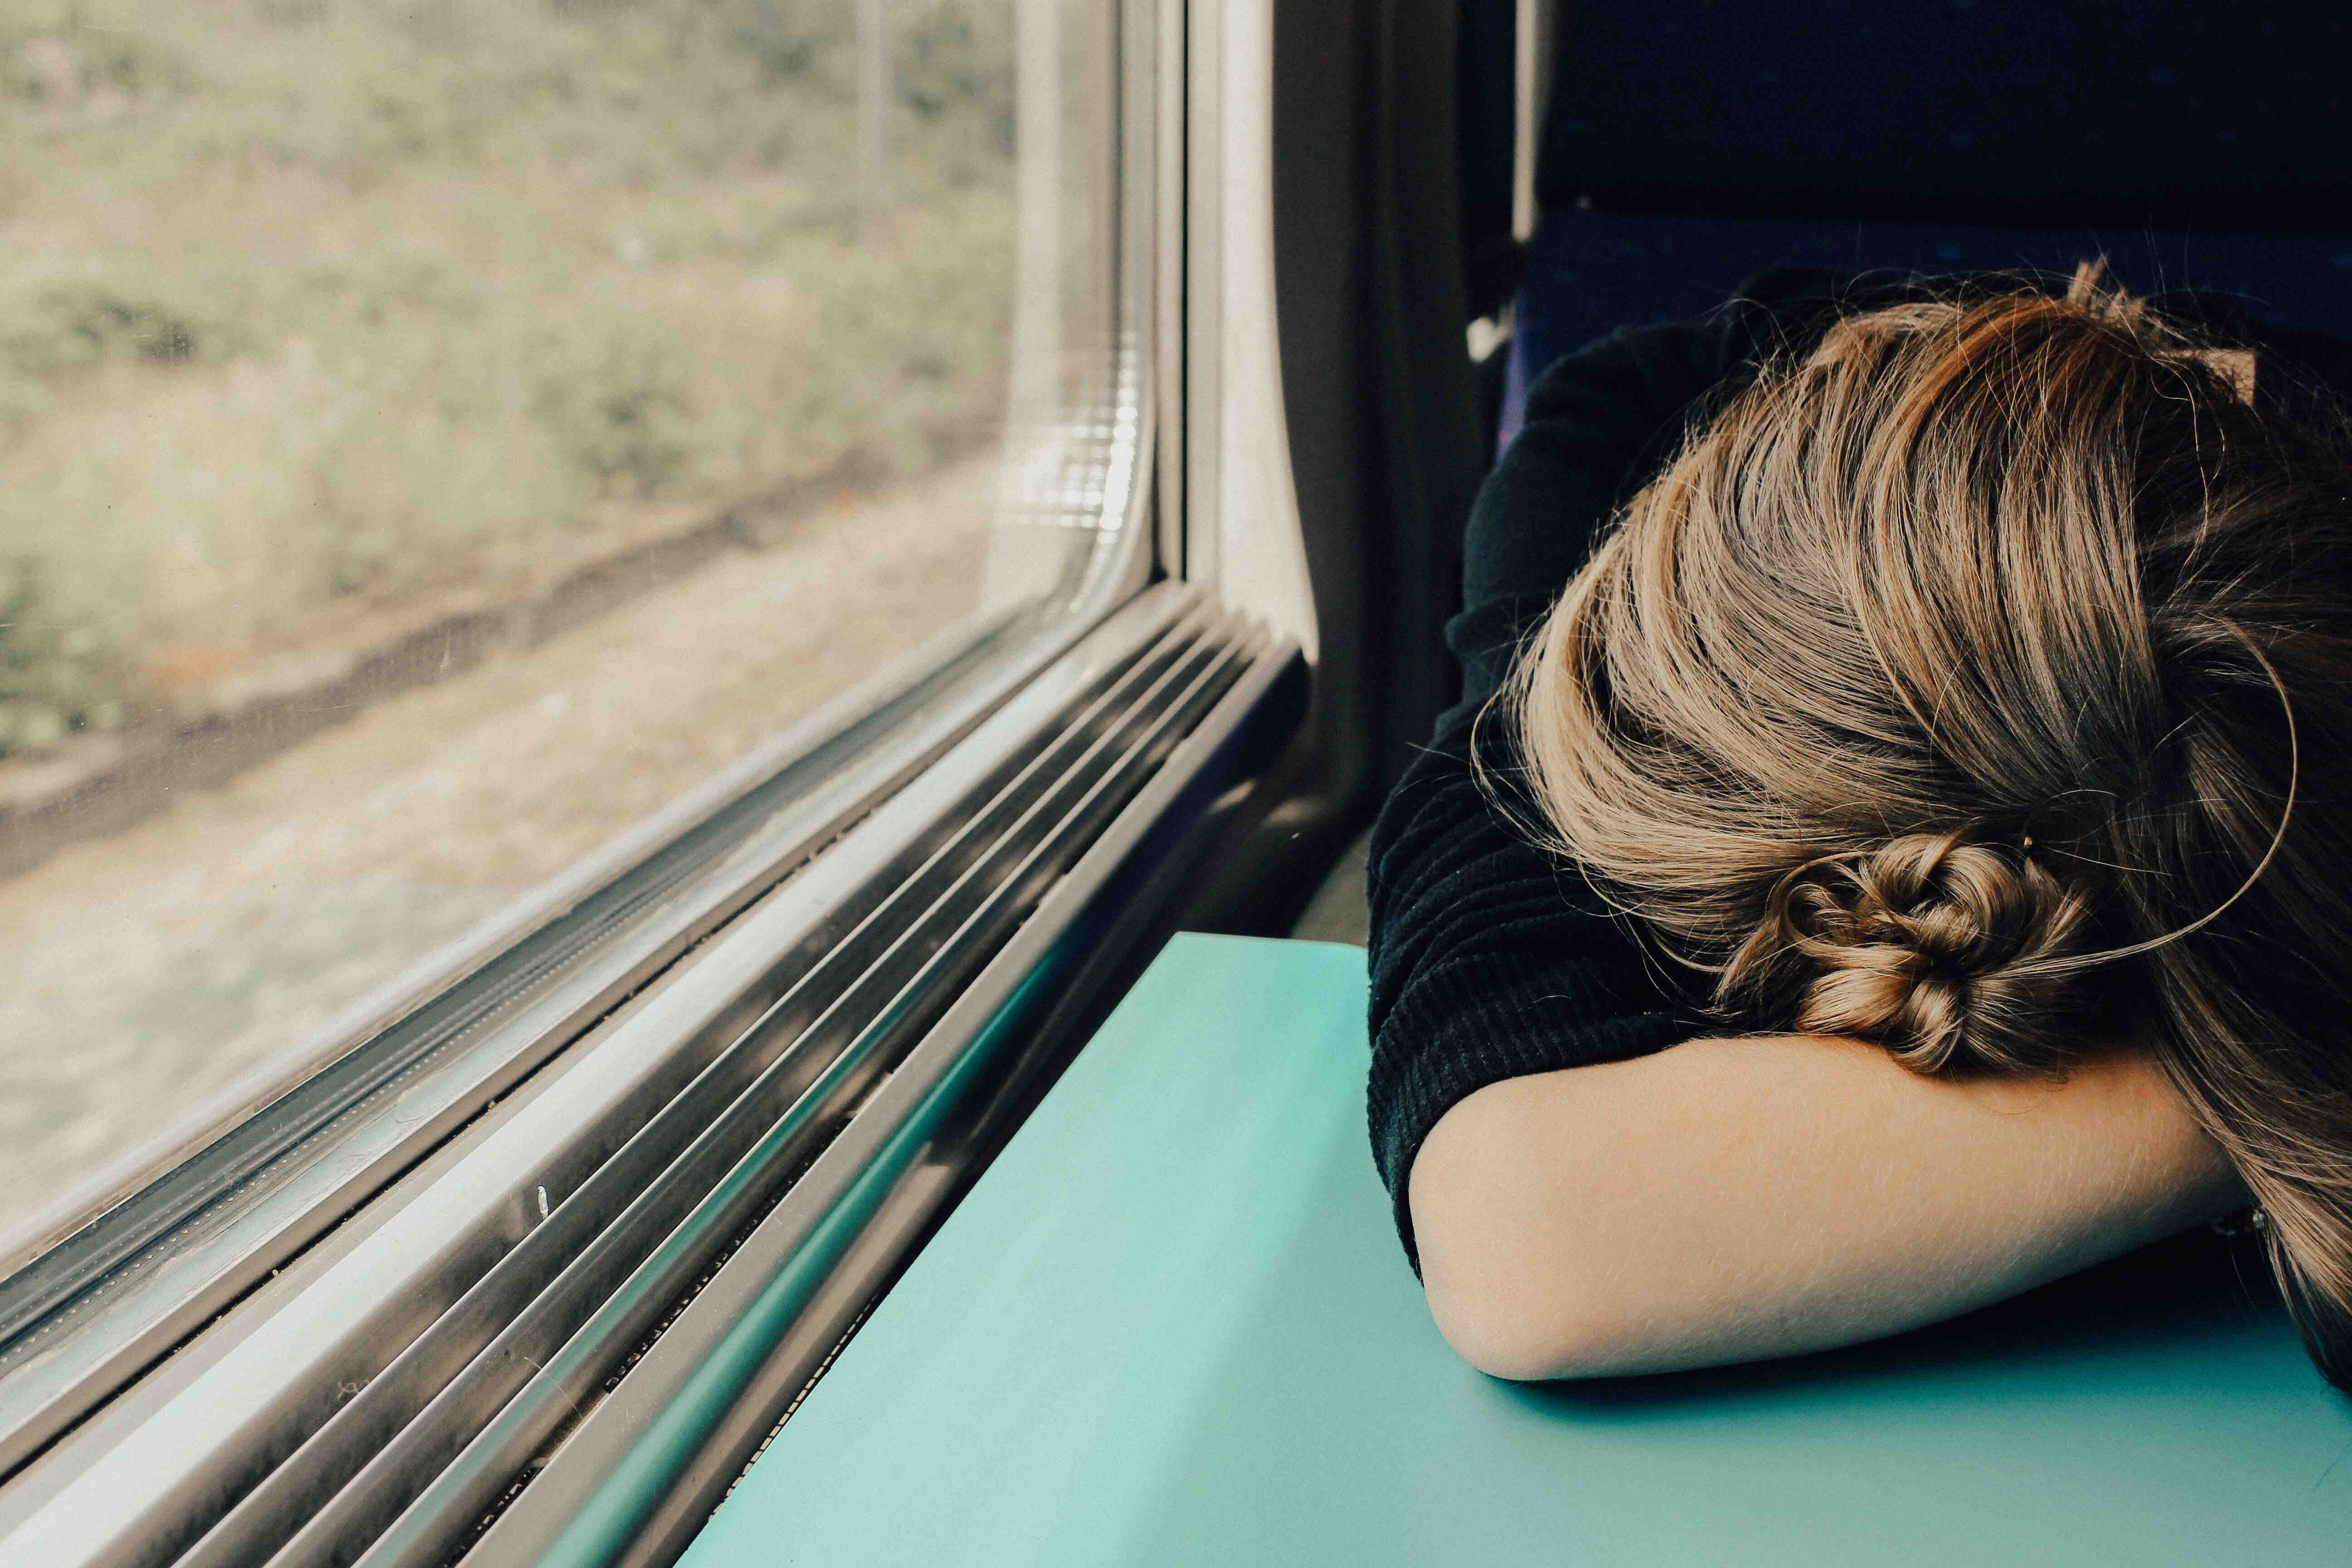 Tired woman with her head down on a train tray table